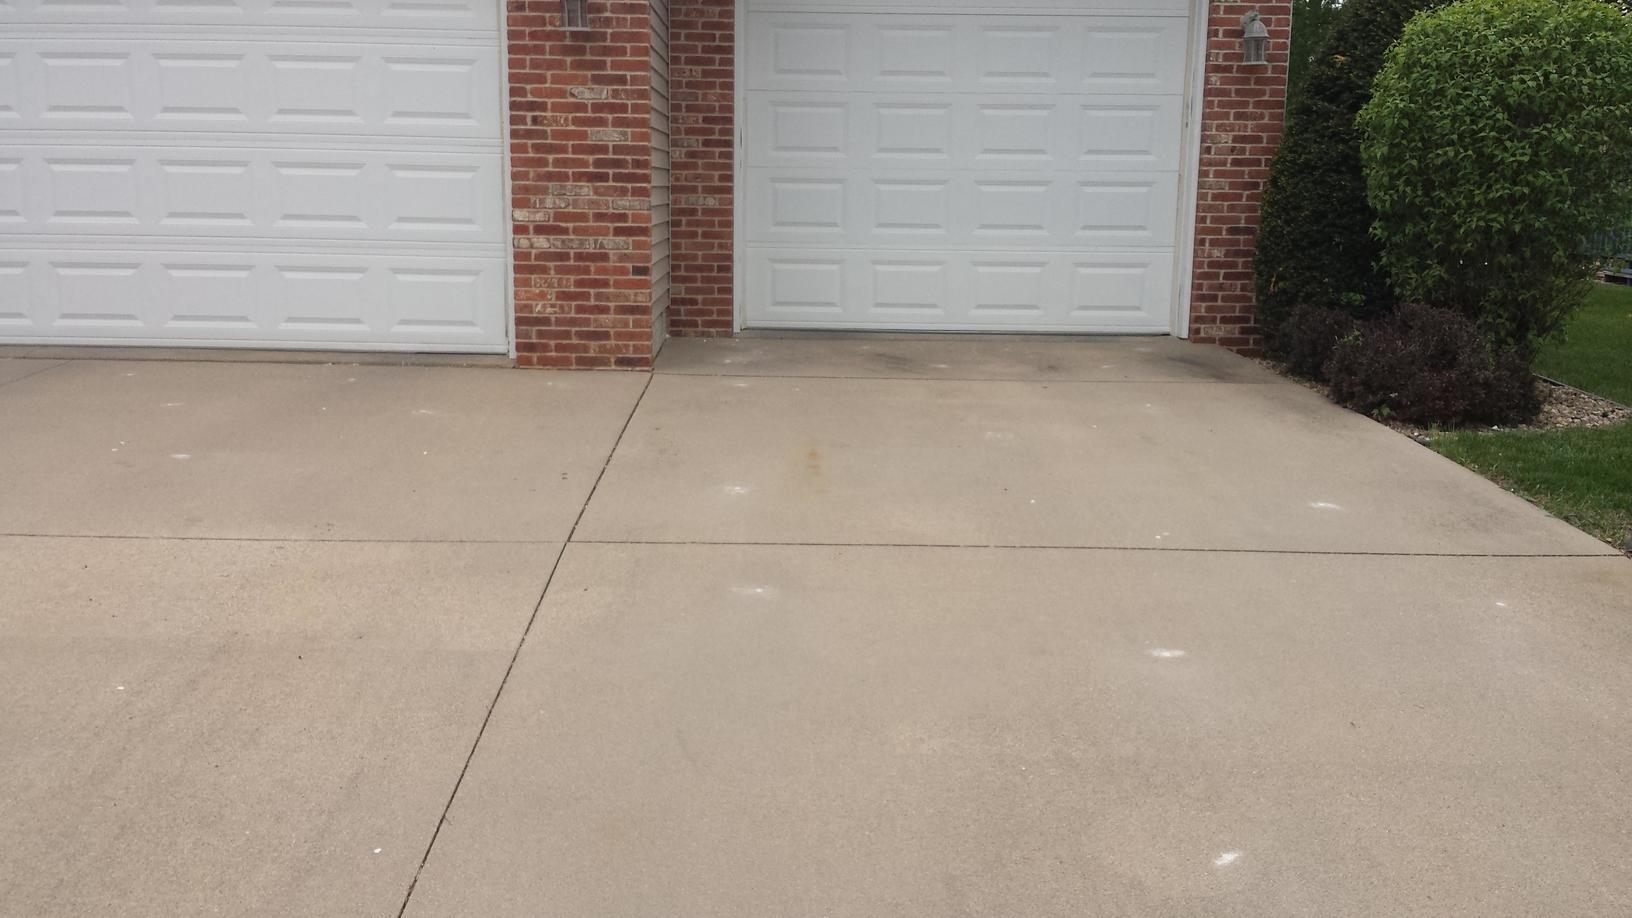 Full view of completed driveway.